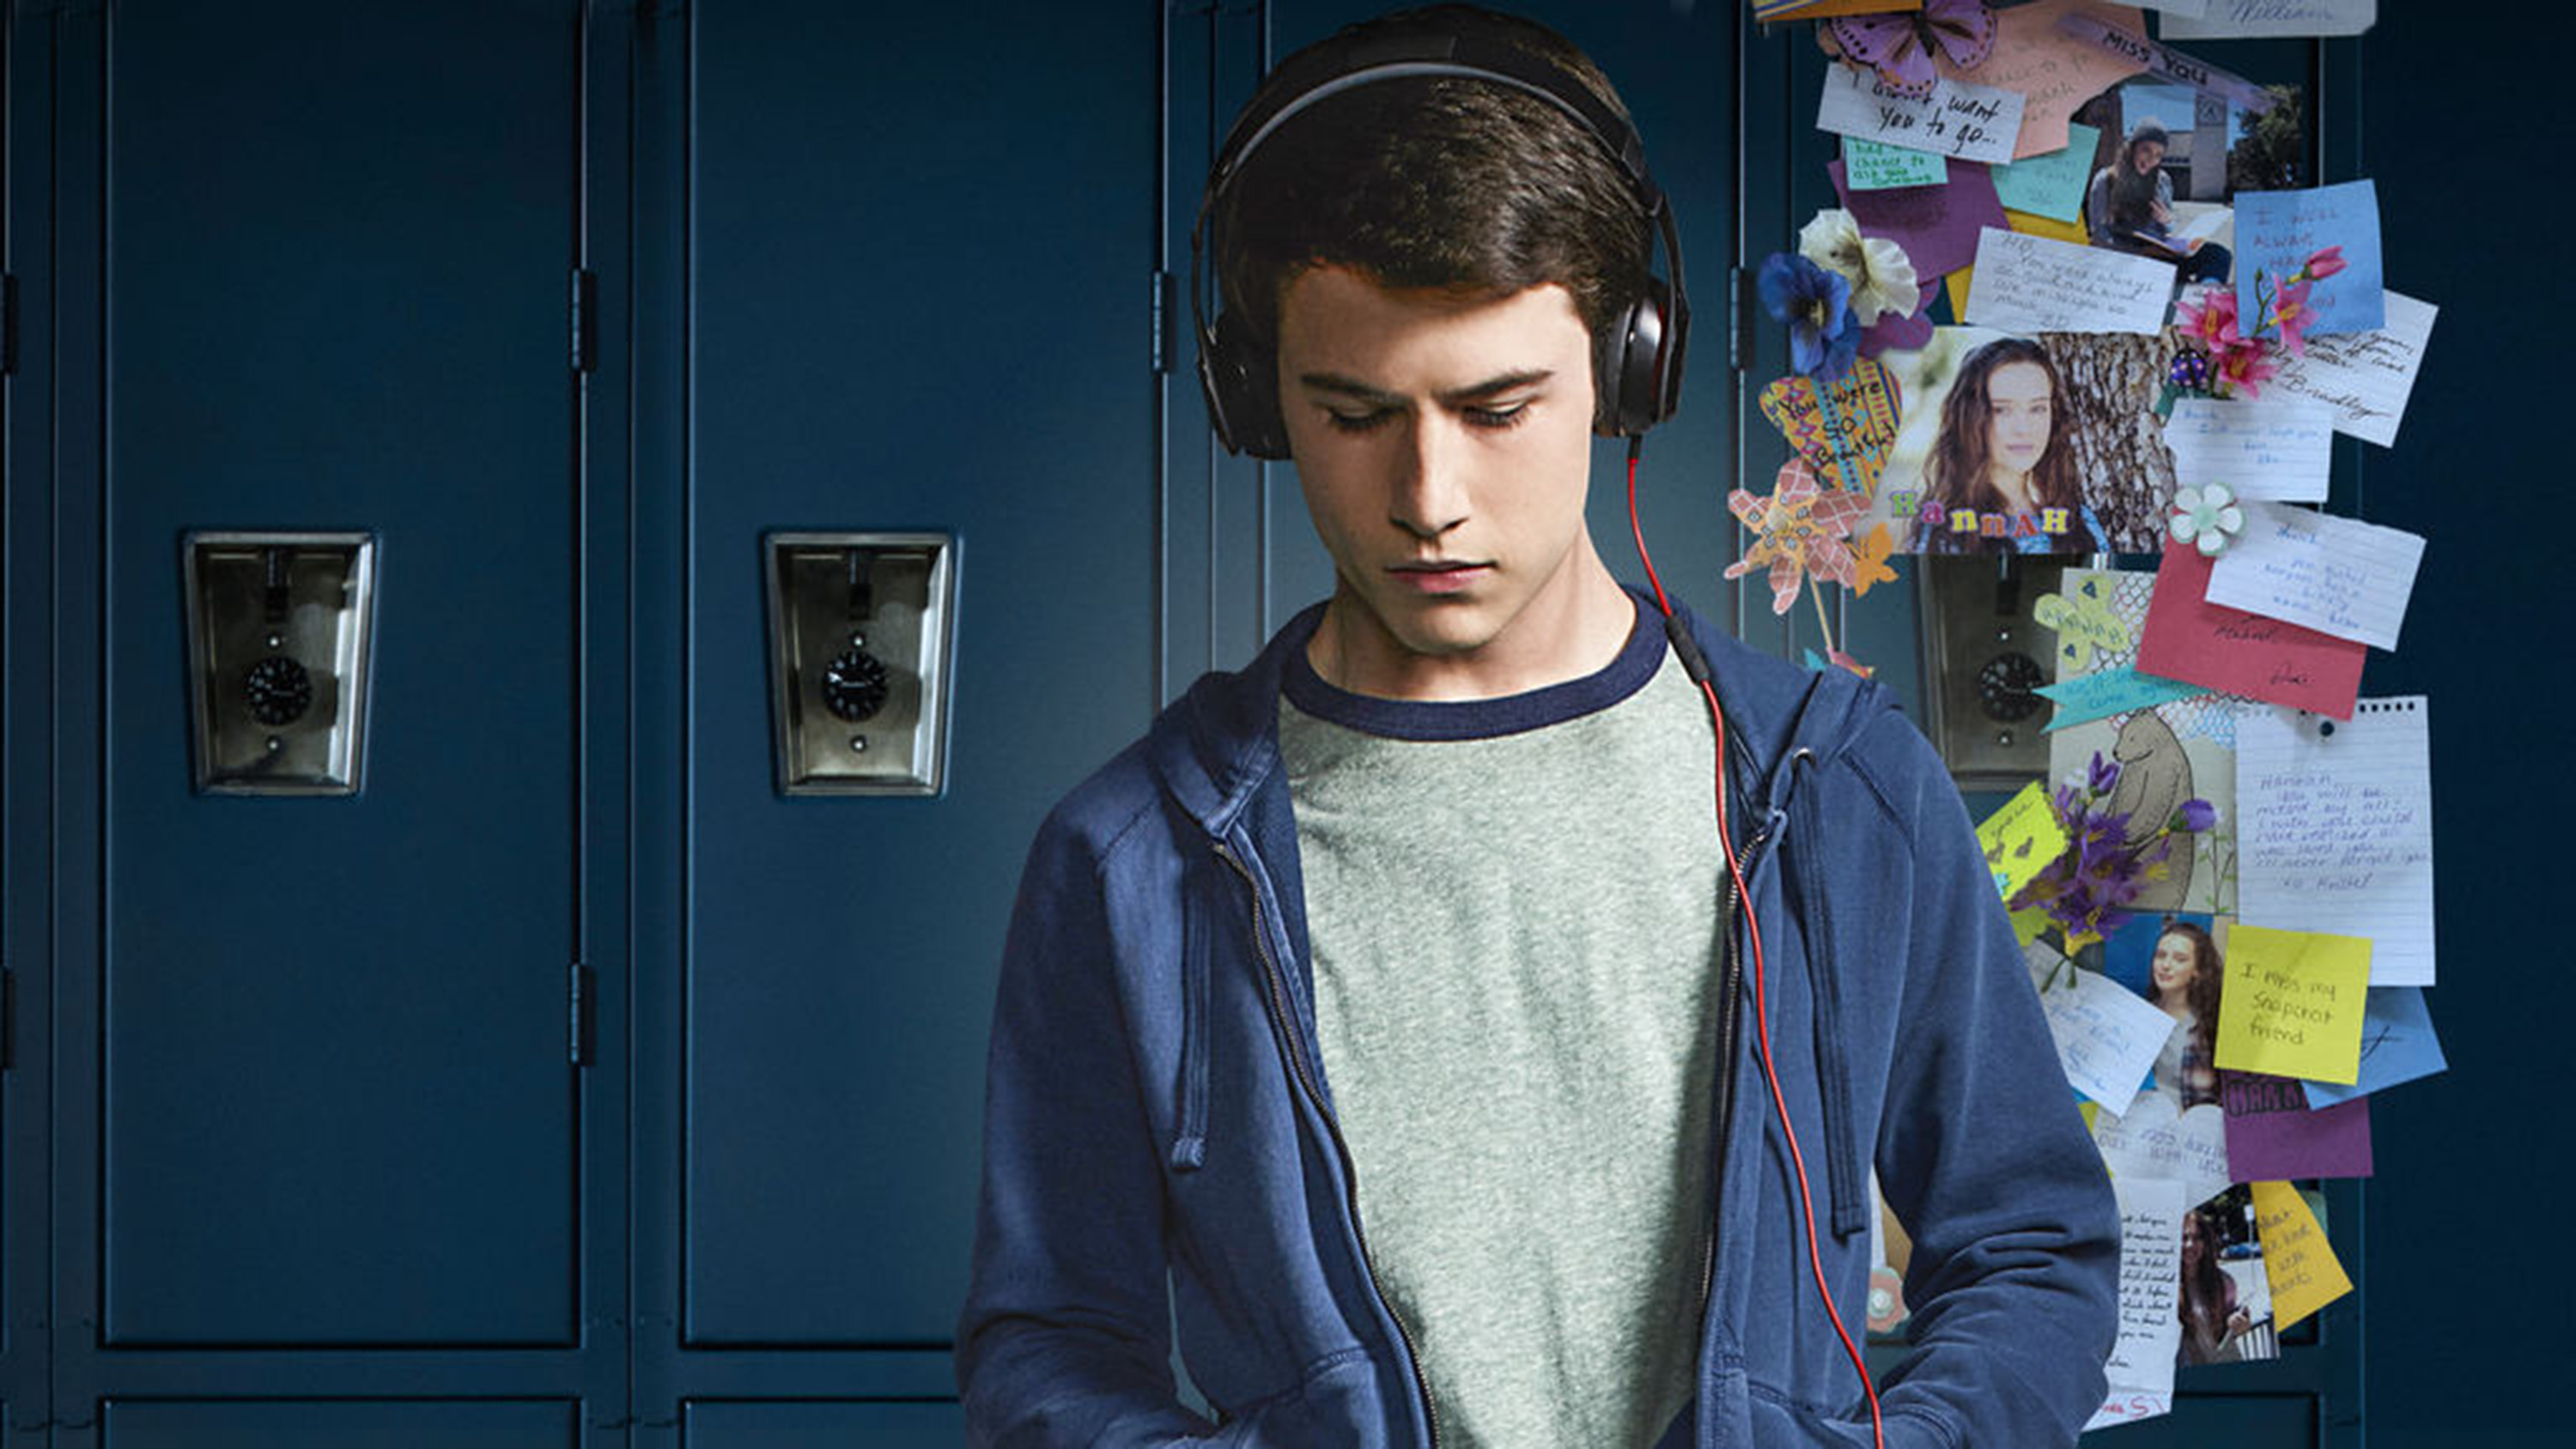 Some Canadian Schools Are Banning '13 Reasons Why'